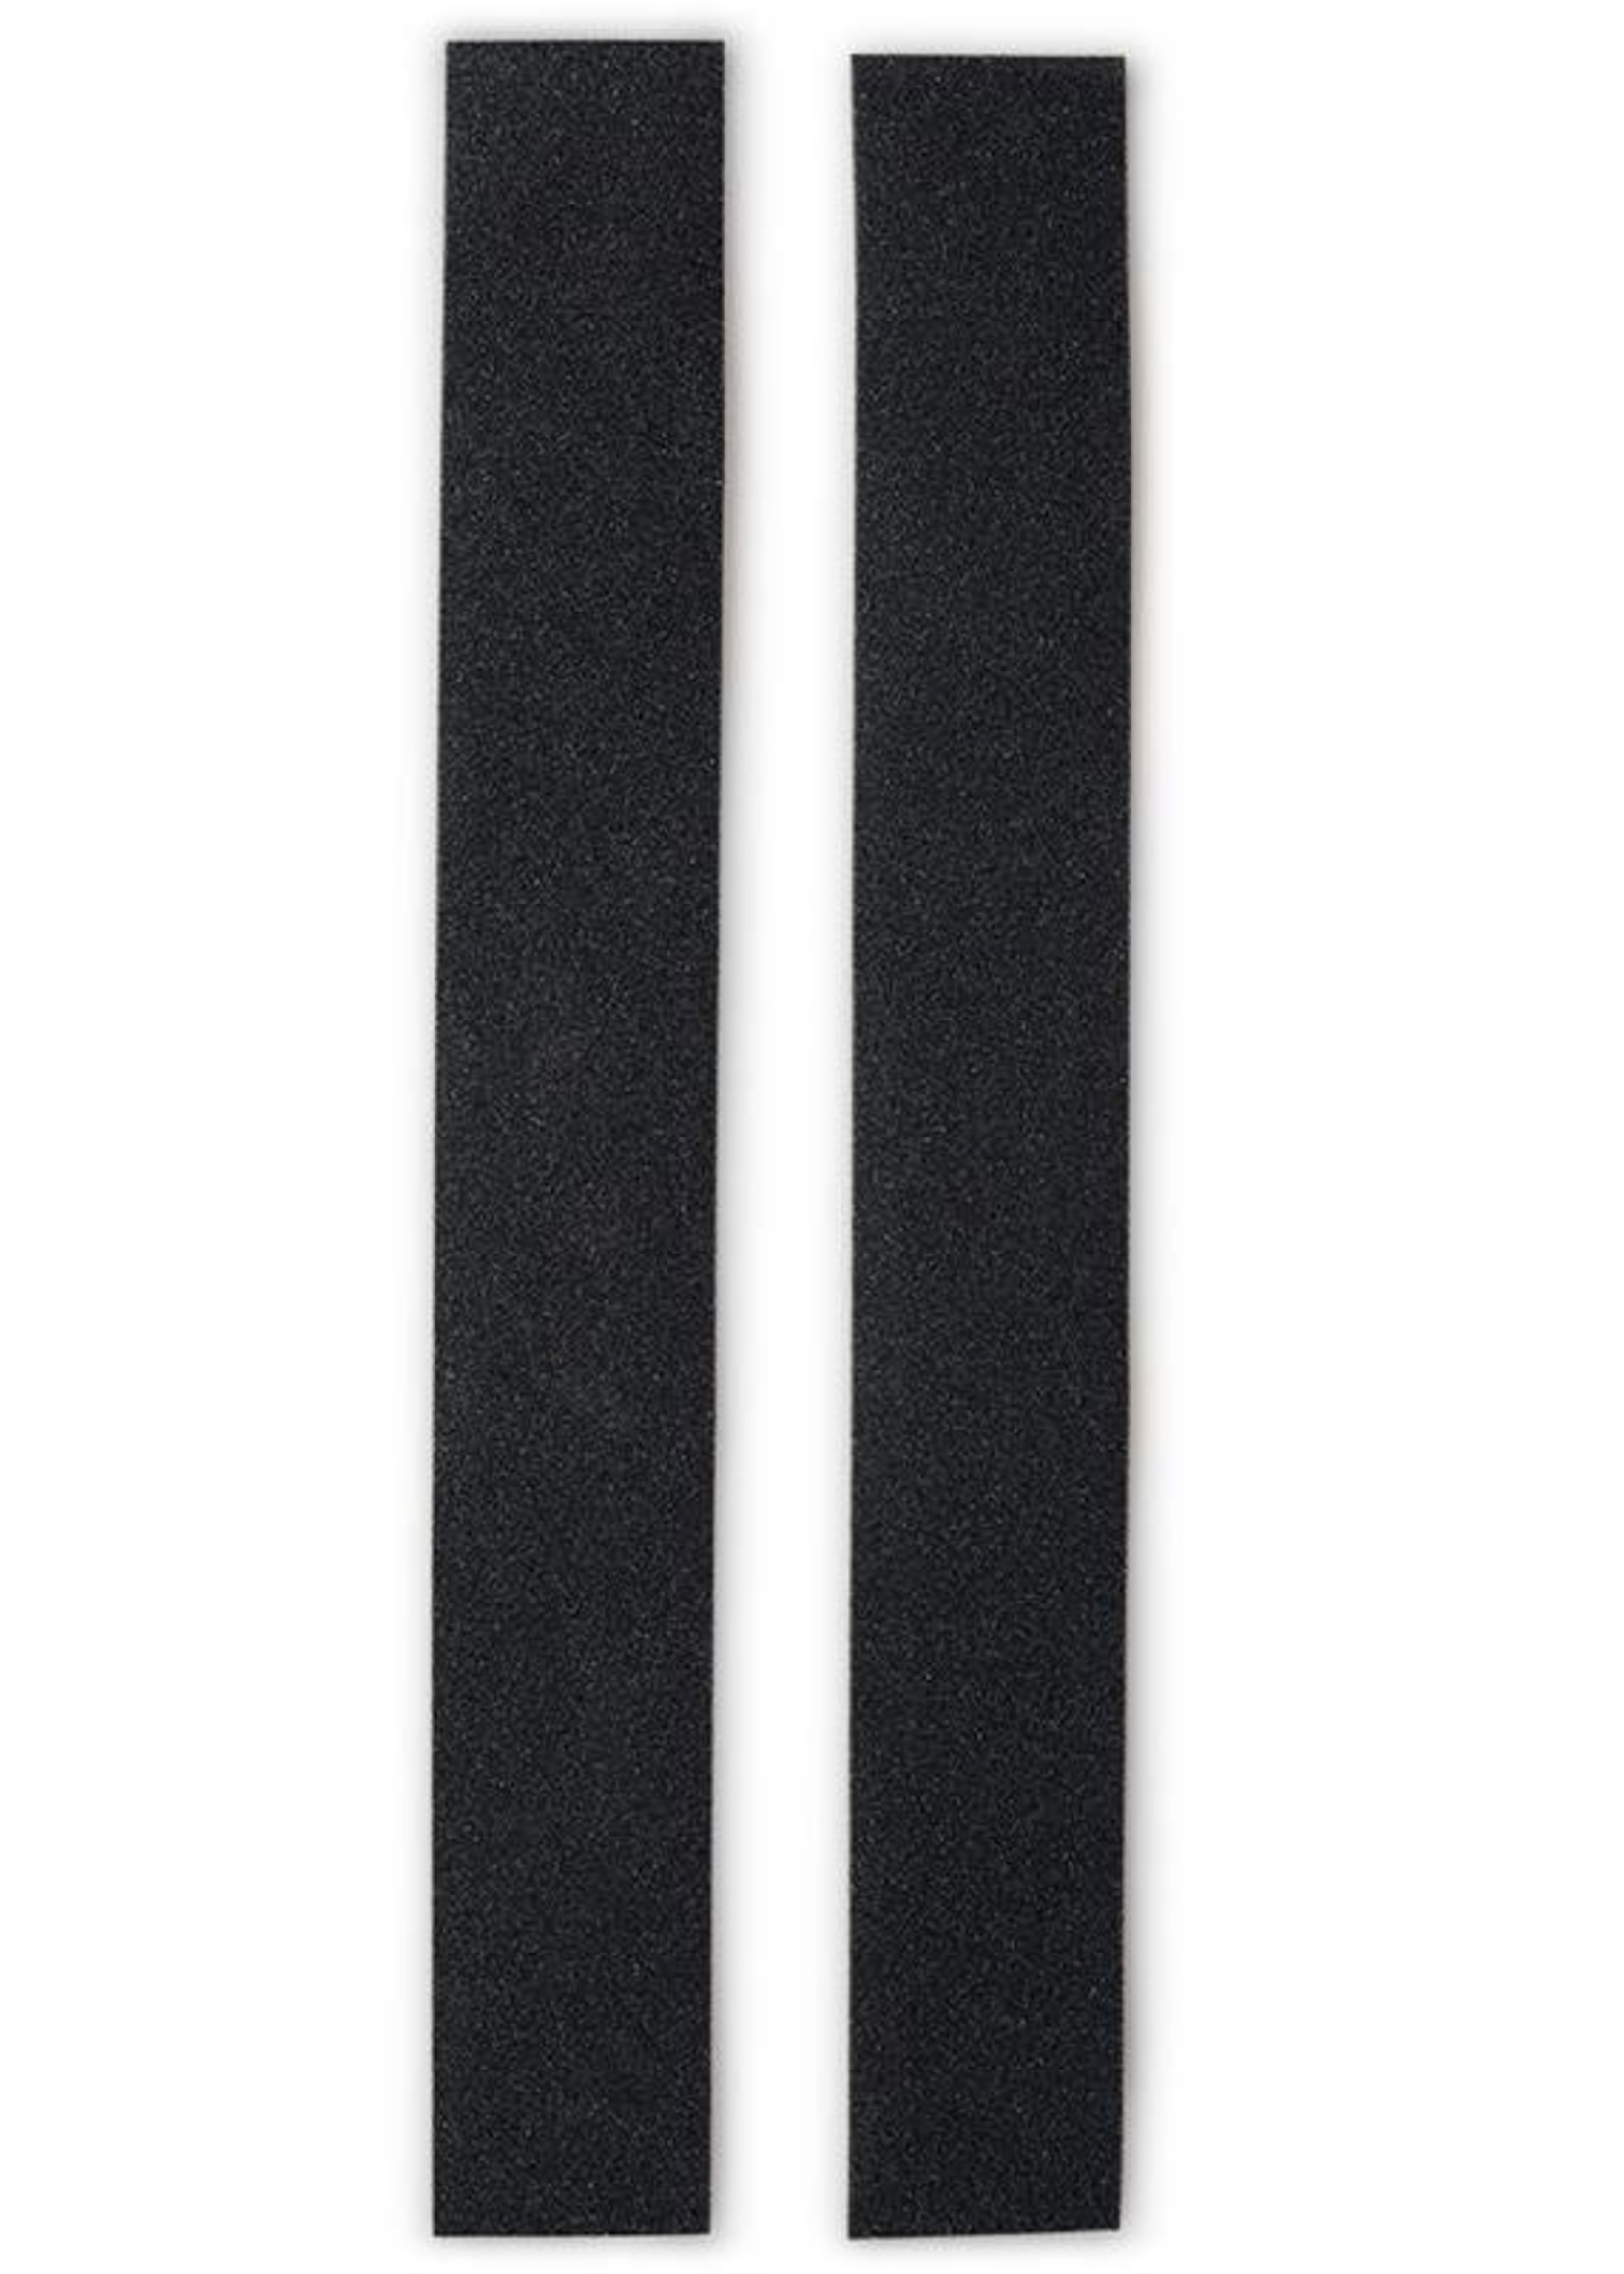 Vew-Do Vew-Do Replacement Griptape Friction Tape for the Bottom